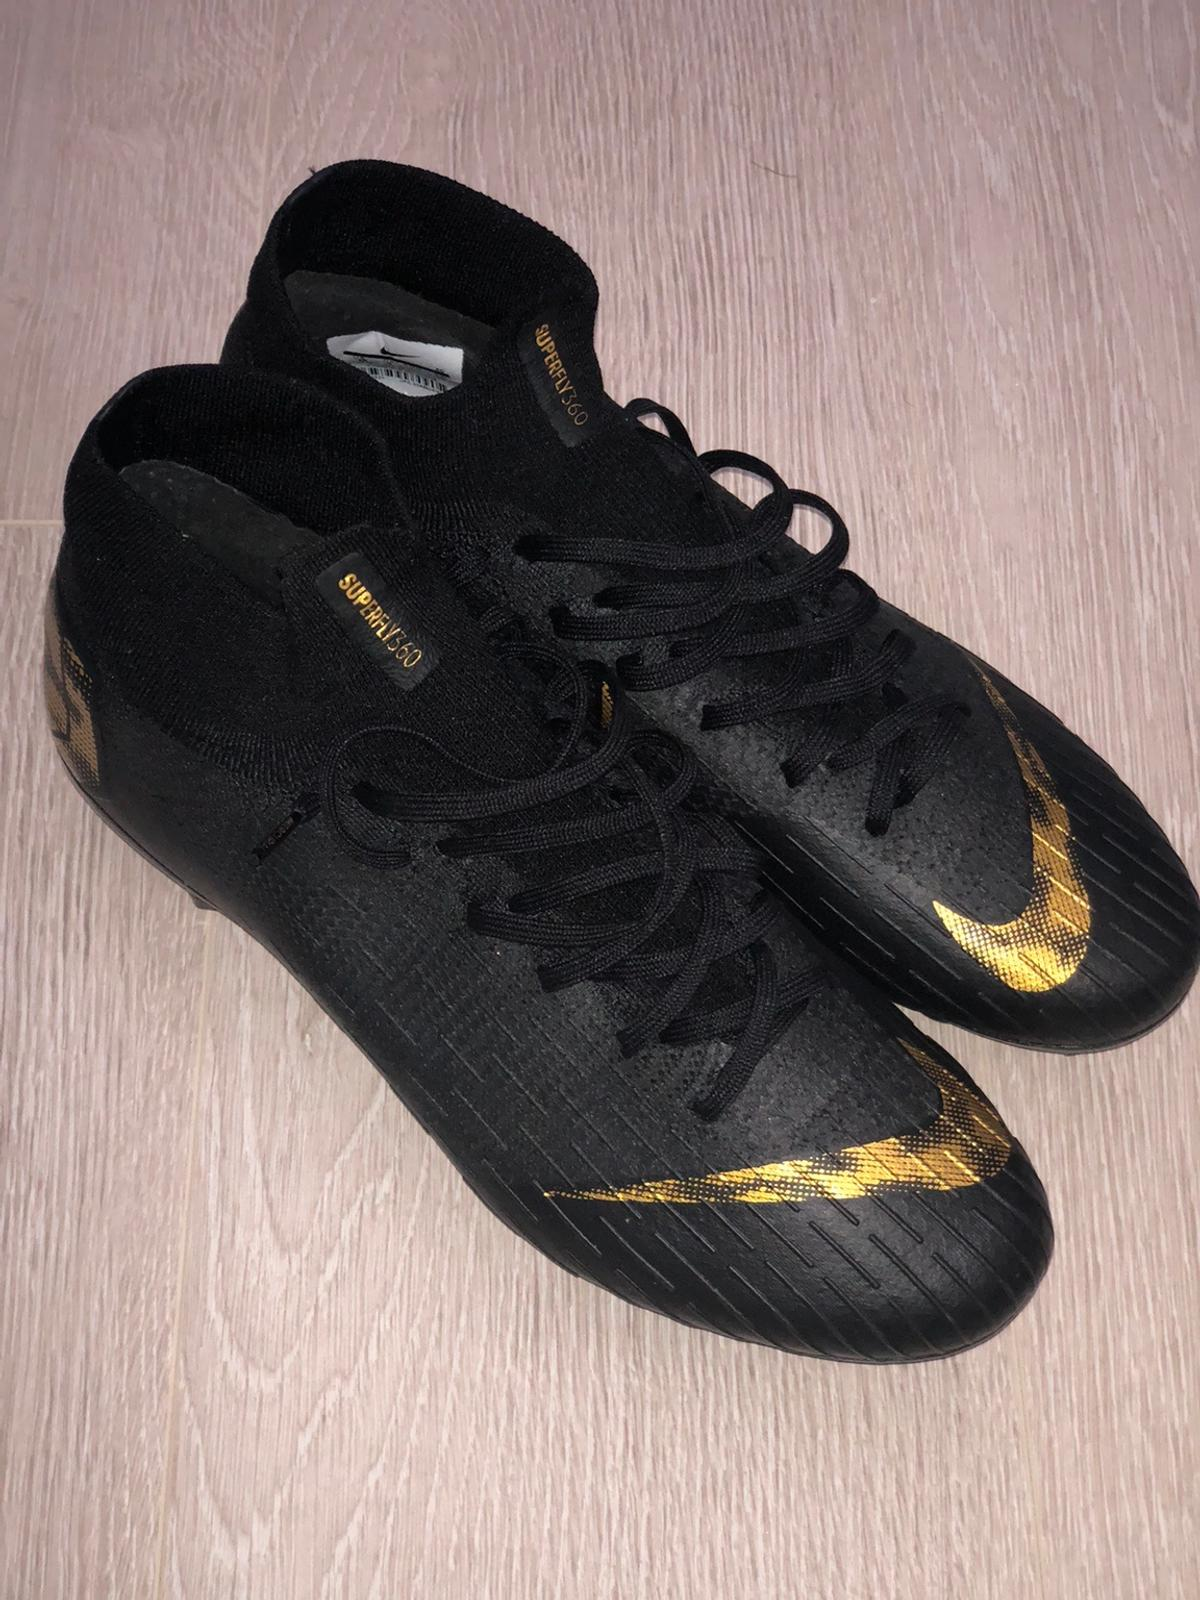 Brand new size 9 ACC Nike mercurial football boots. Selling as they're too small for me. RRP £229.95